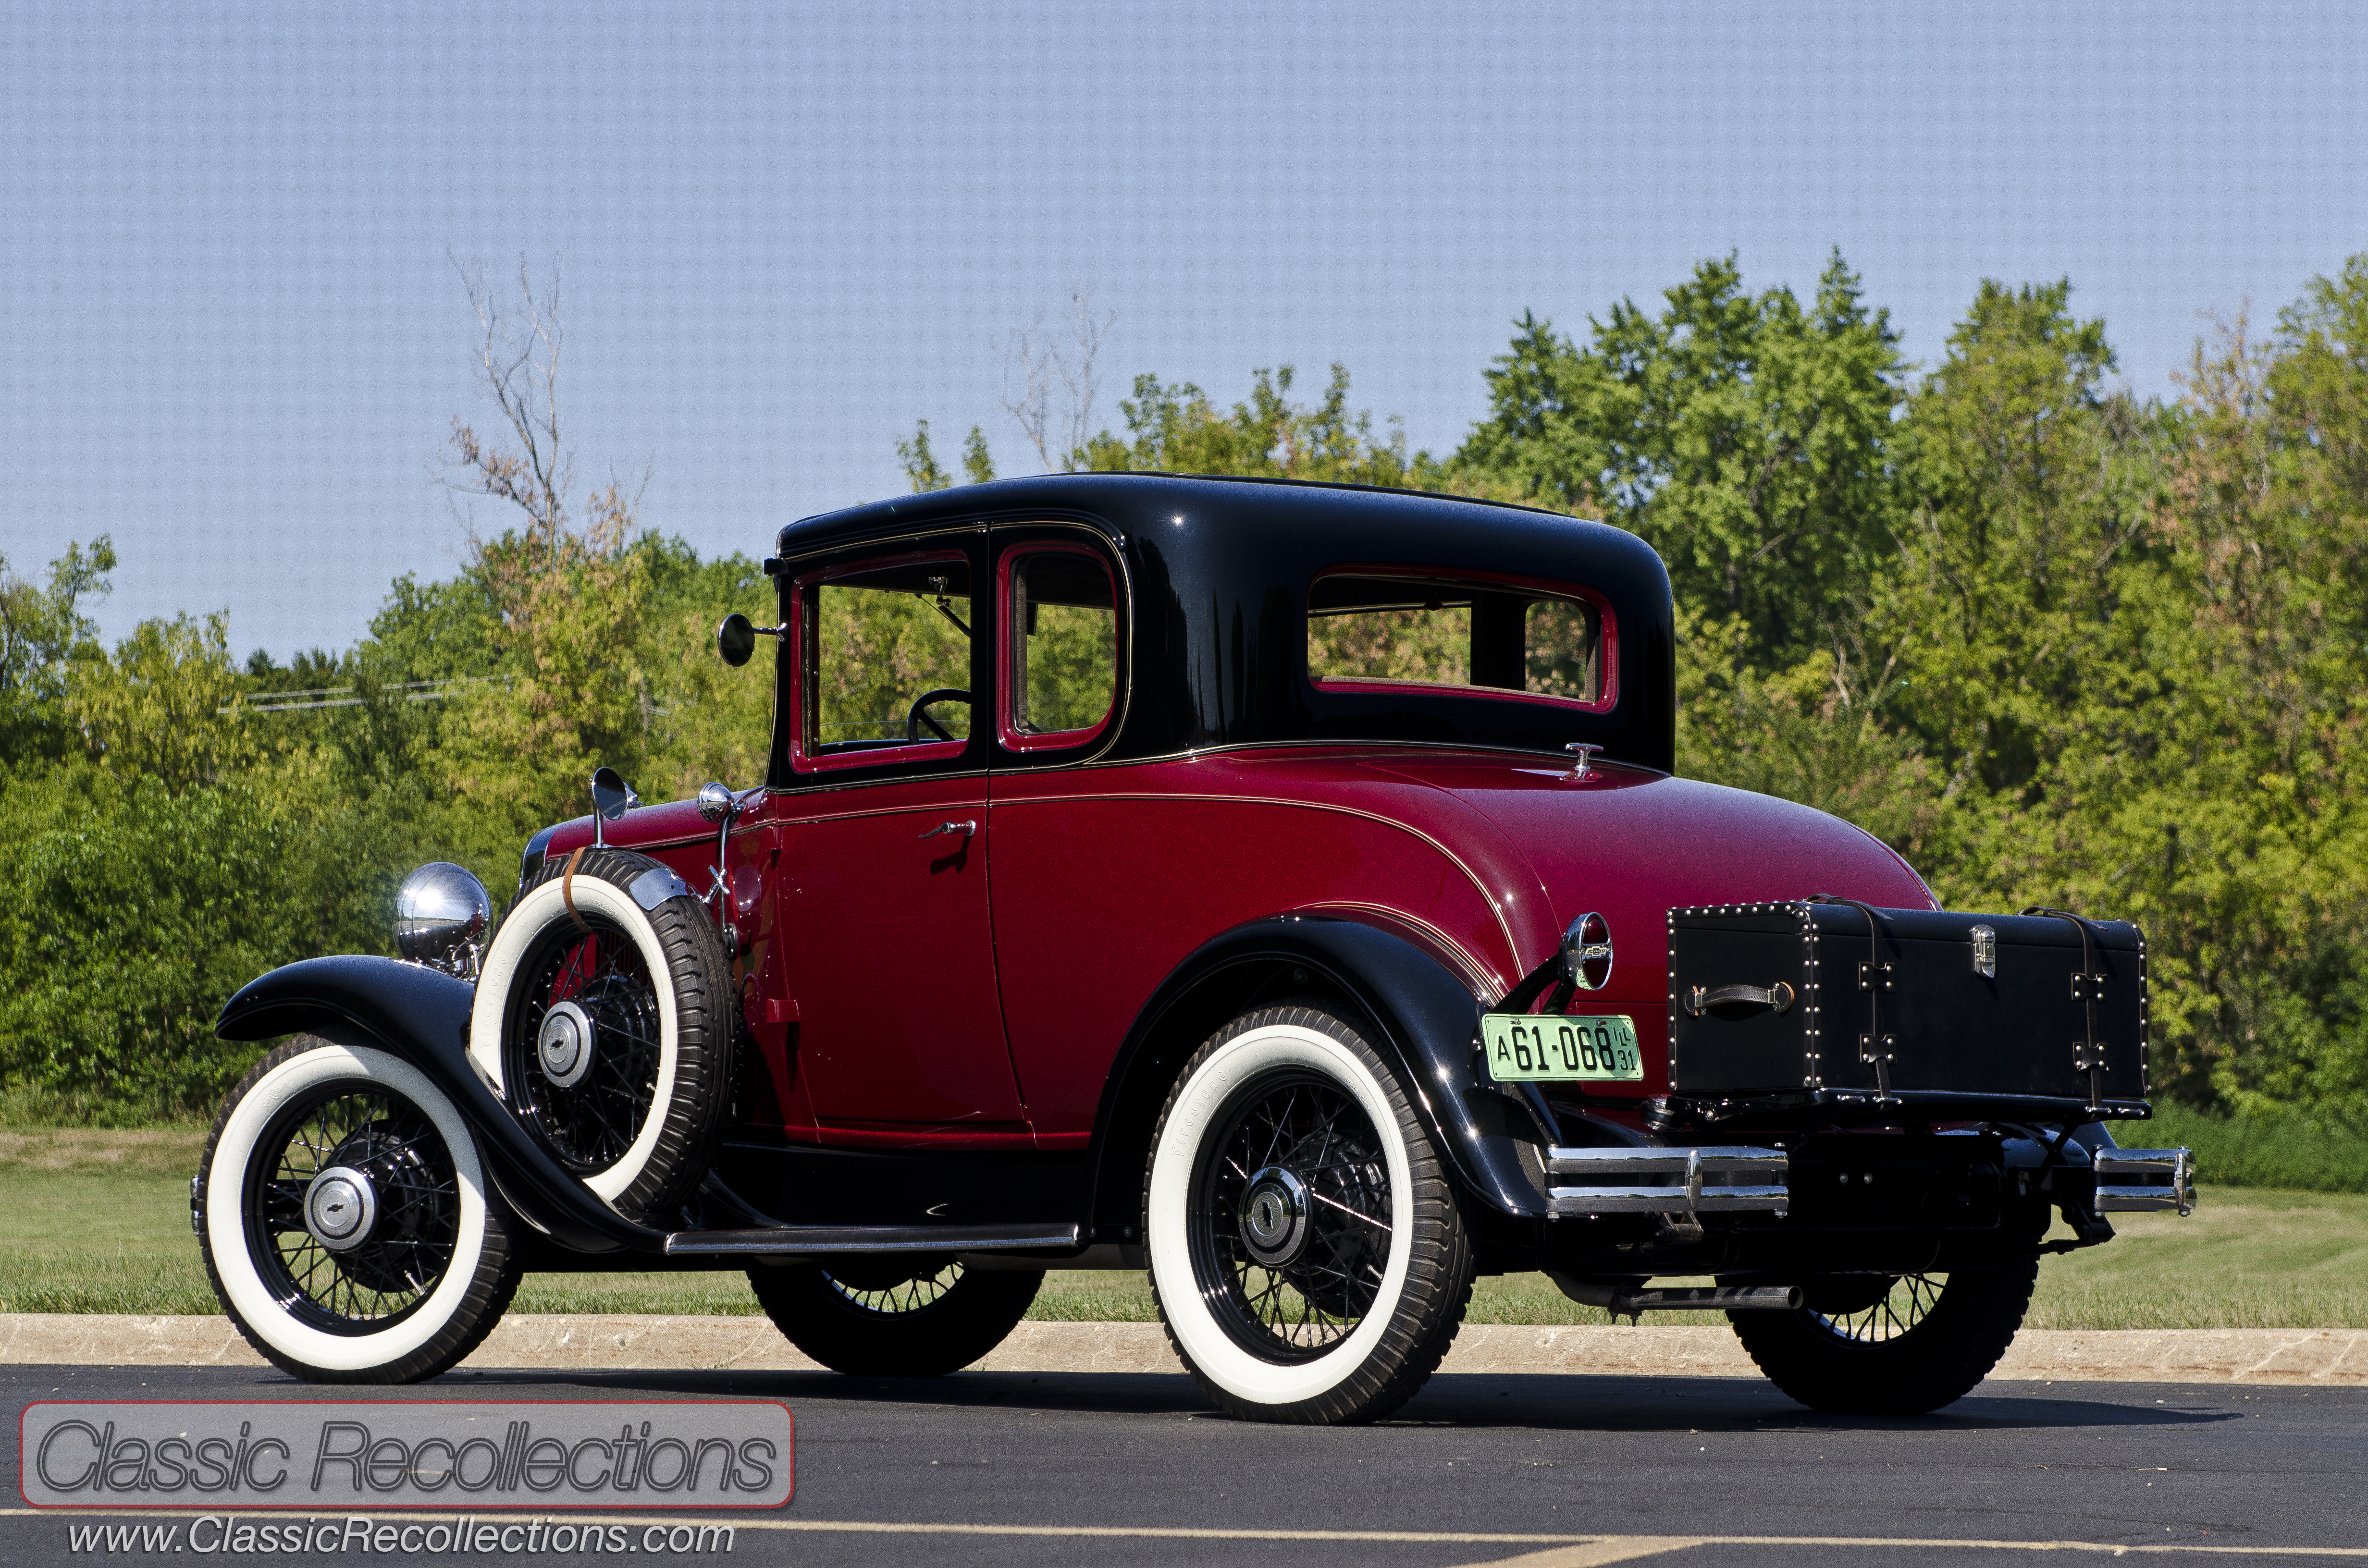 FEATURE: 1931 Chevrolet Deluxe Sport Coupe – Classic Recollections